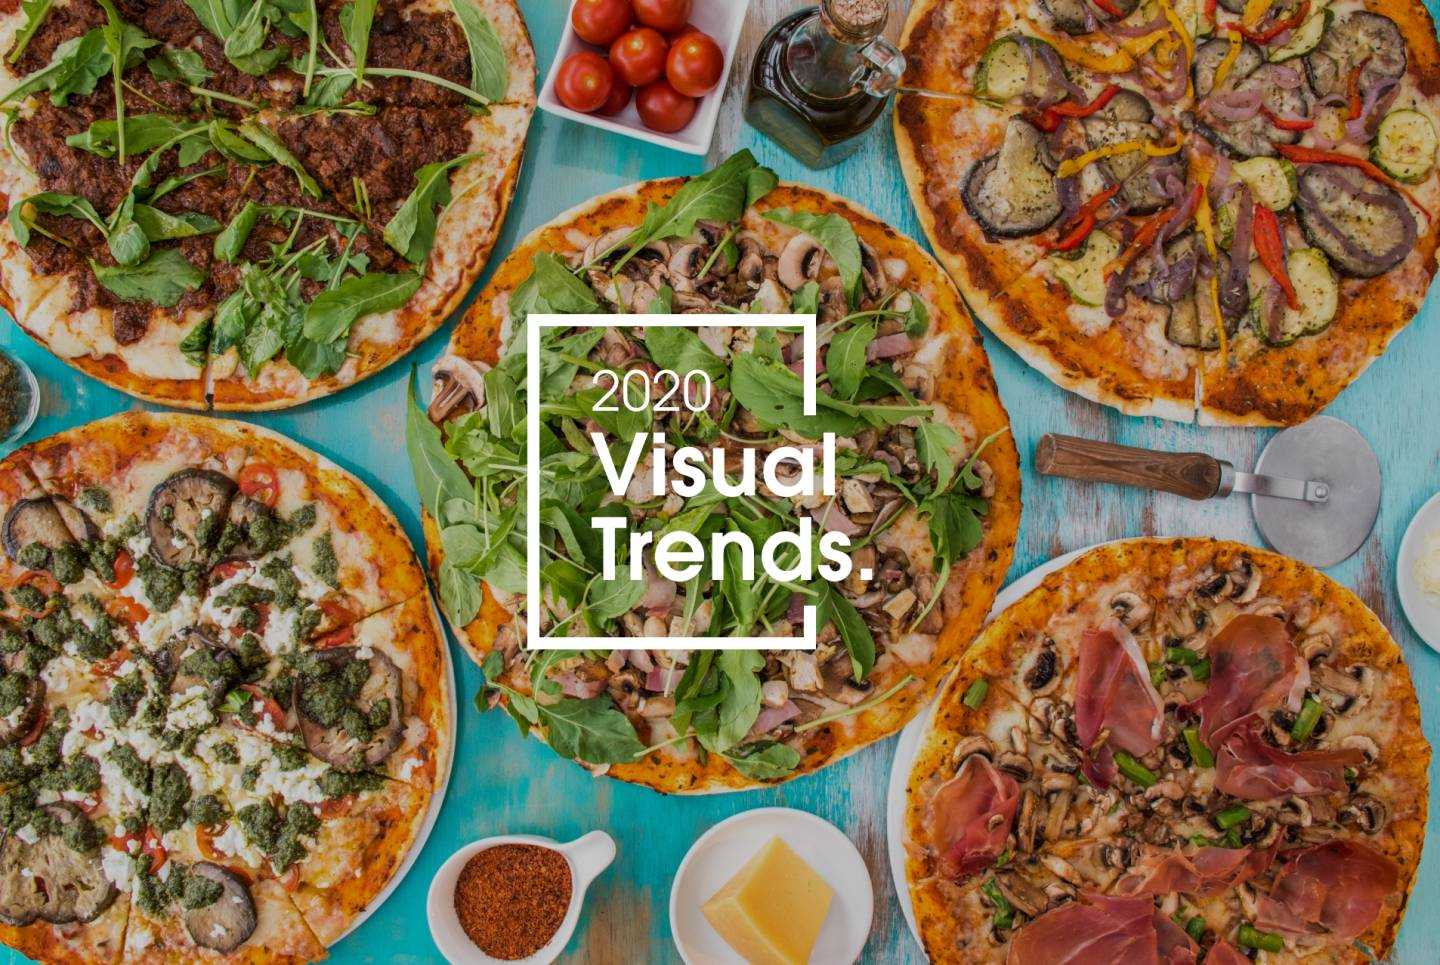 Meero Visual Trends 2020 Food and beverage